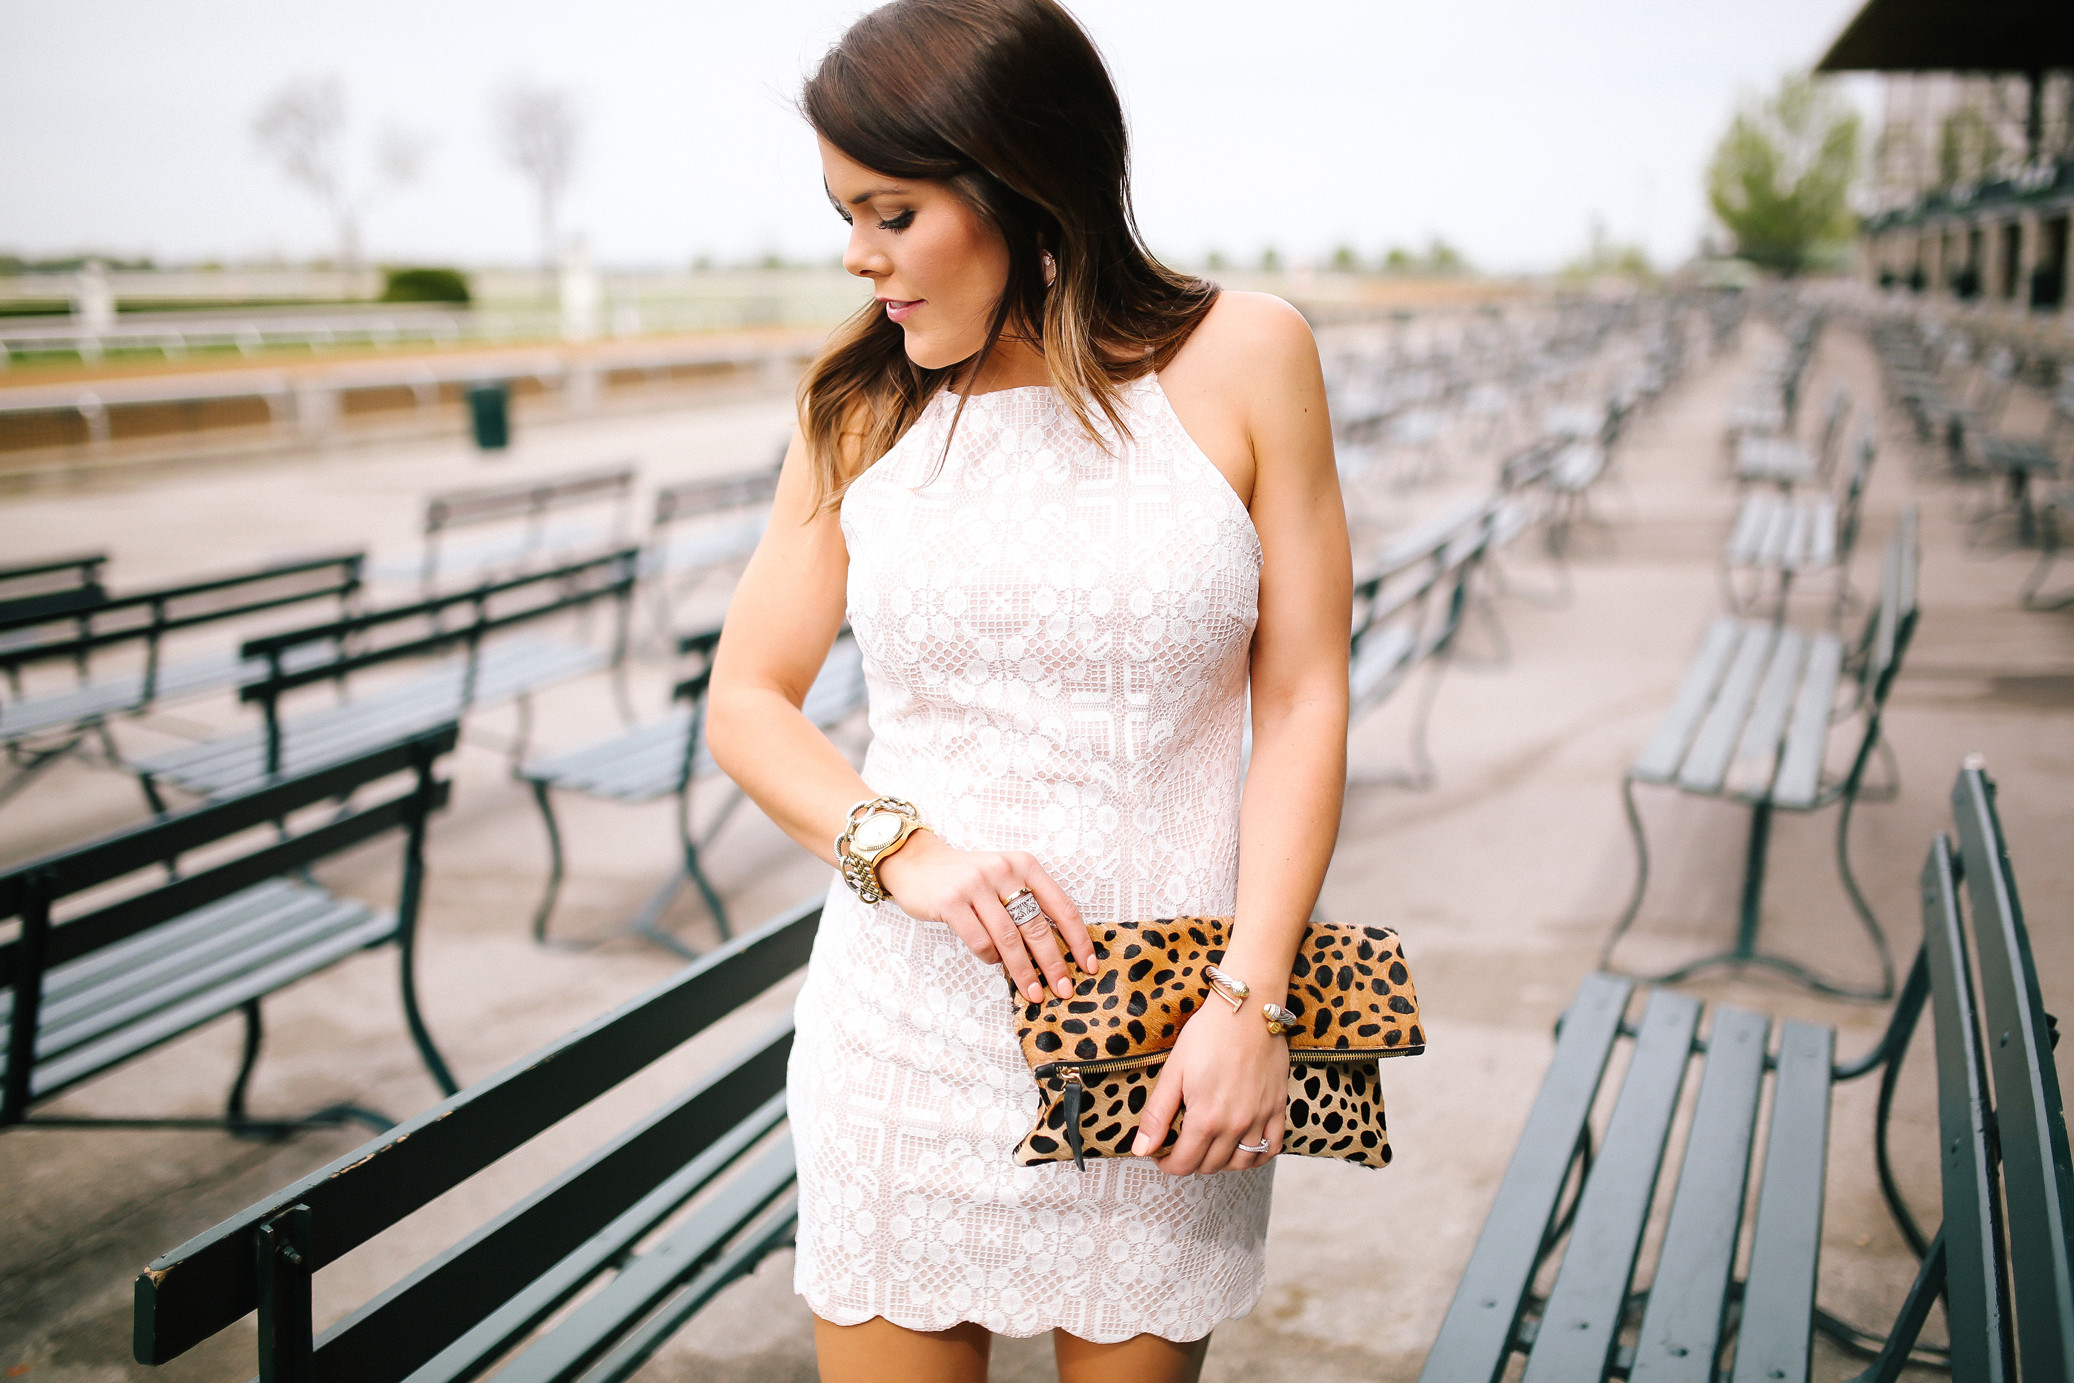 Bachelorette Party Dress Up Ideas  bachelorette party outfit Glitter & Gingham